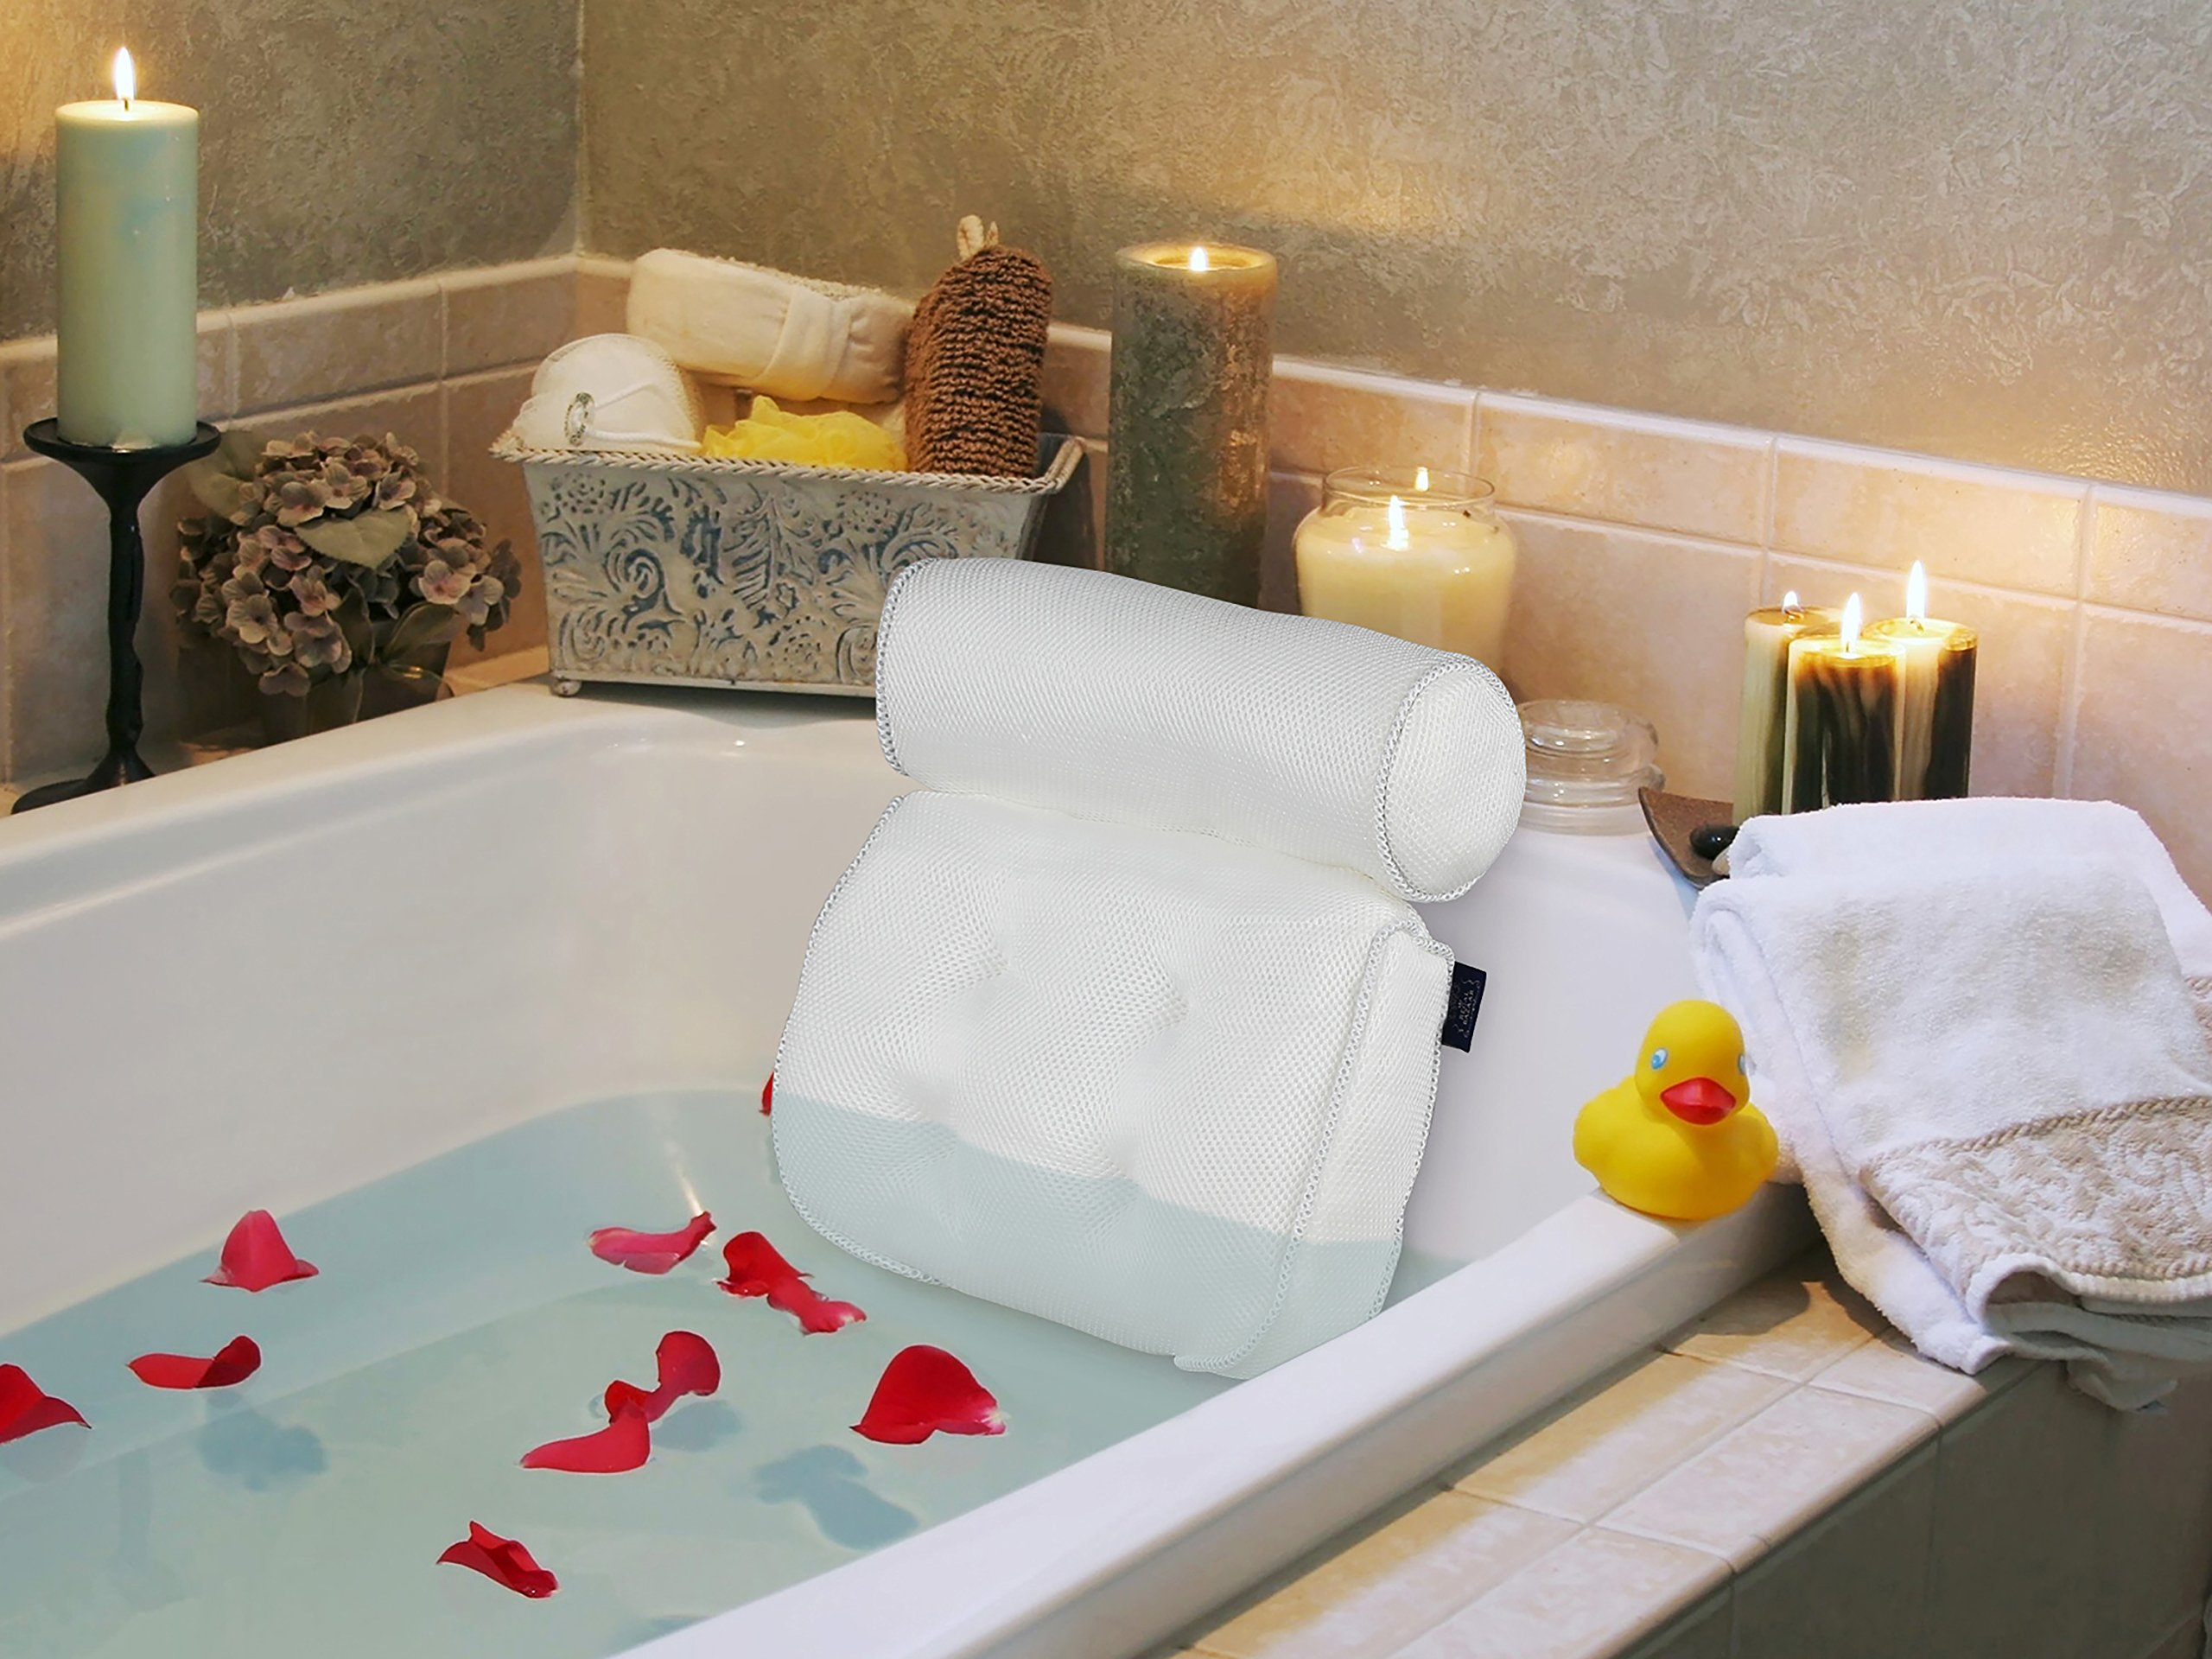 Regal Bazaar Spa Bath Pillow - White Quick-Drying Mesh Fabric - With Large Suction Cups, Hanging Hook and Carry Bag - Helps Support Head, Back, Shoulder and Neck - A Great Gift Idea!